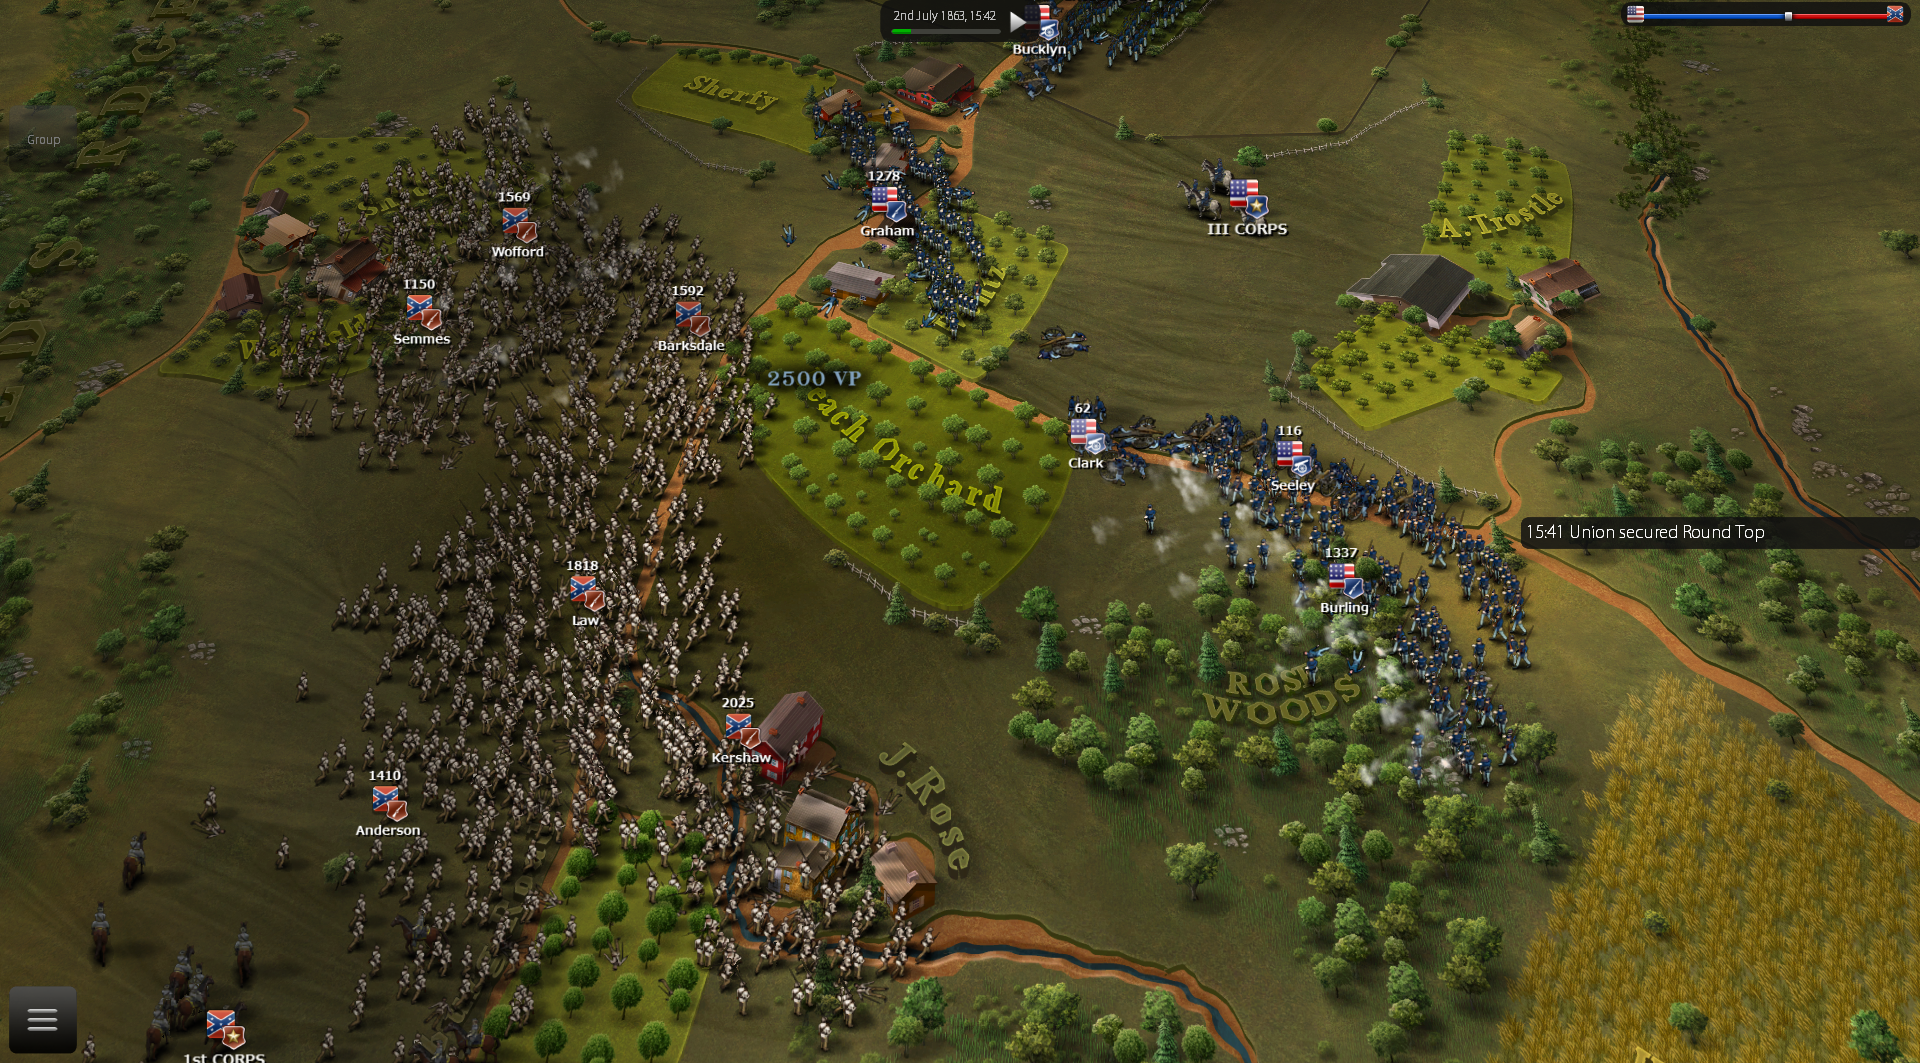 "confederate ""determined"" ai personality rushing to attack peach orchard with many strong brigades while THE UNION is vulnerable..."